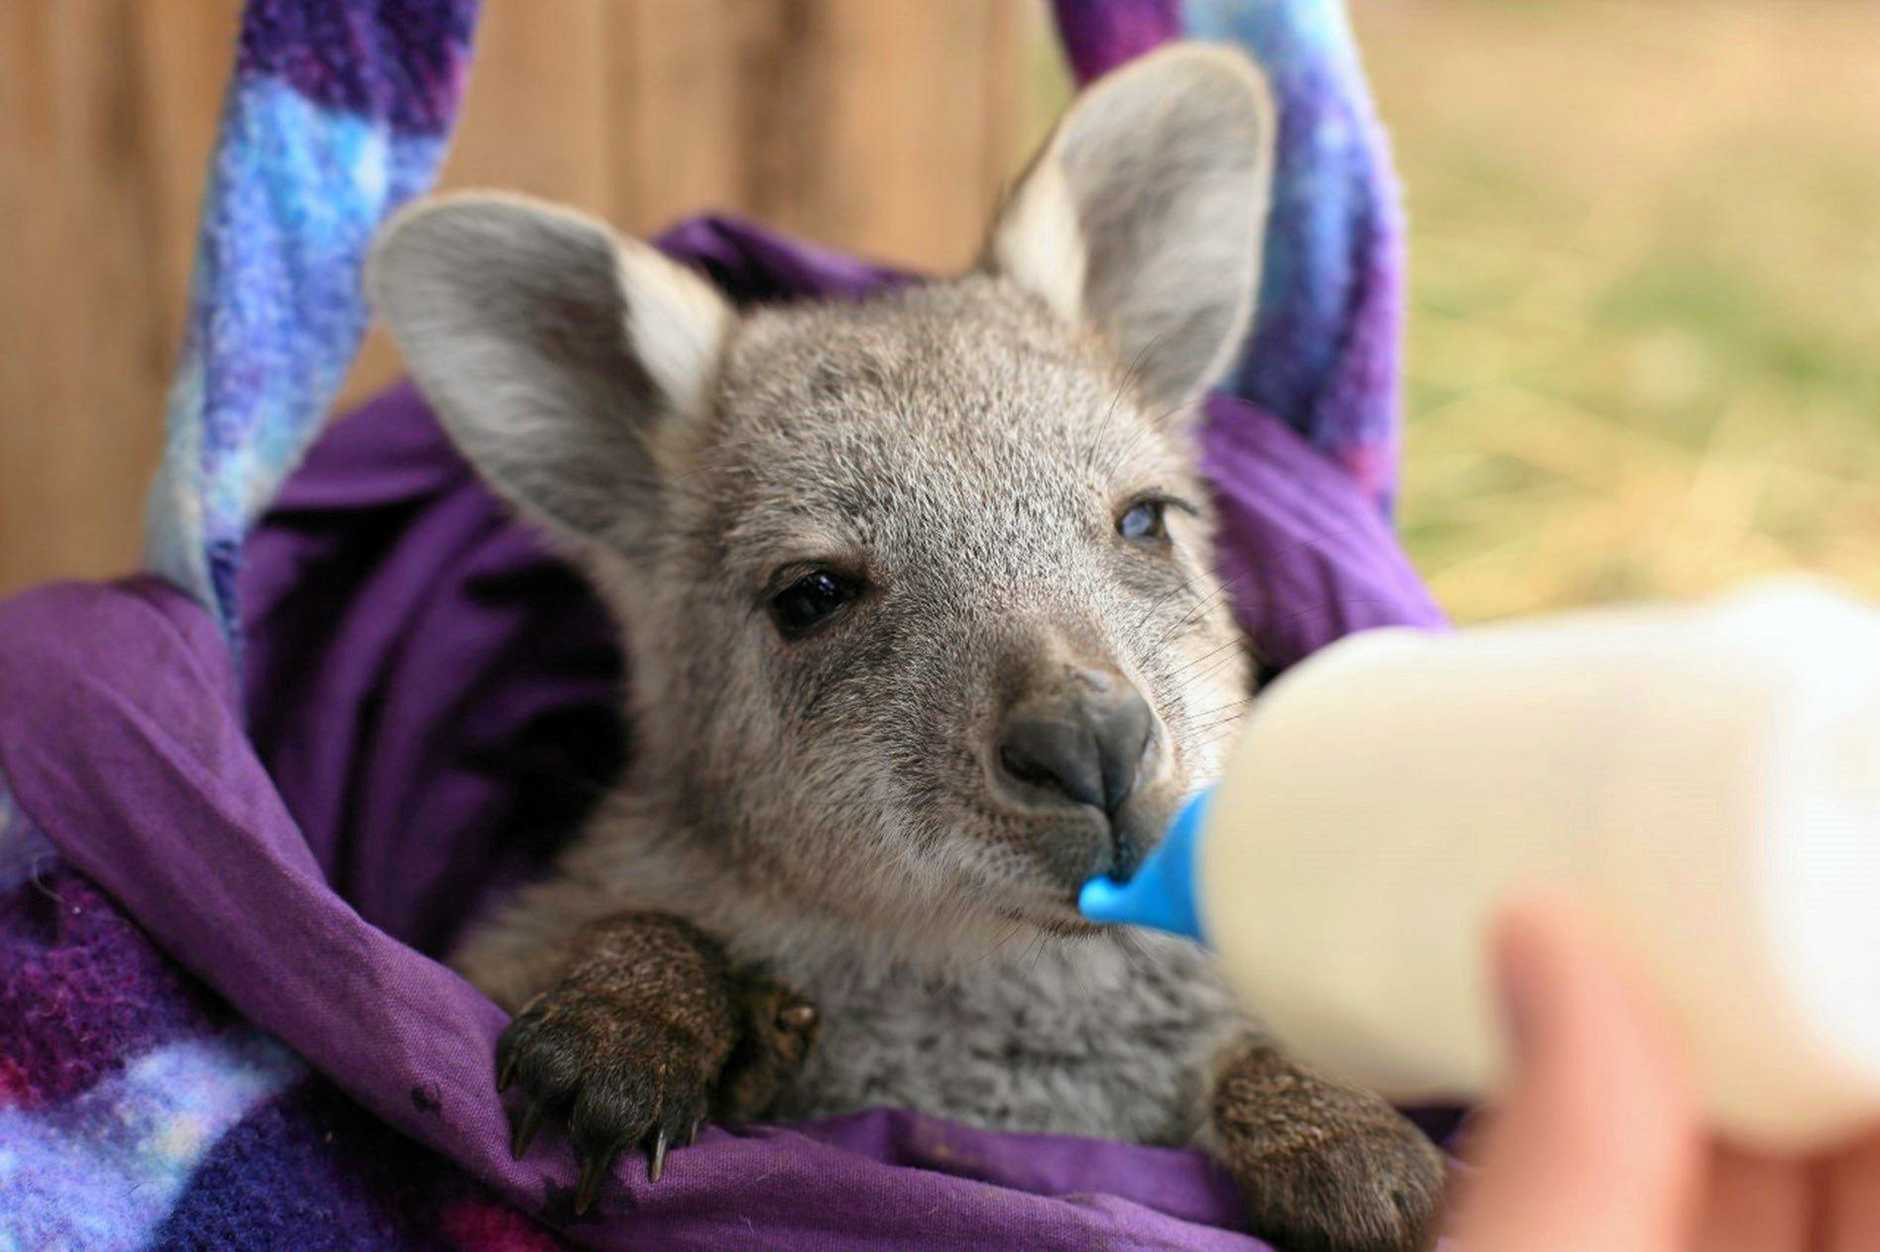 WIRES has made a public appeal to help to save NSW's drought stricken native animals.